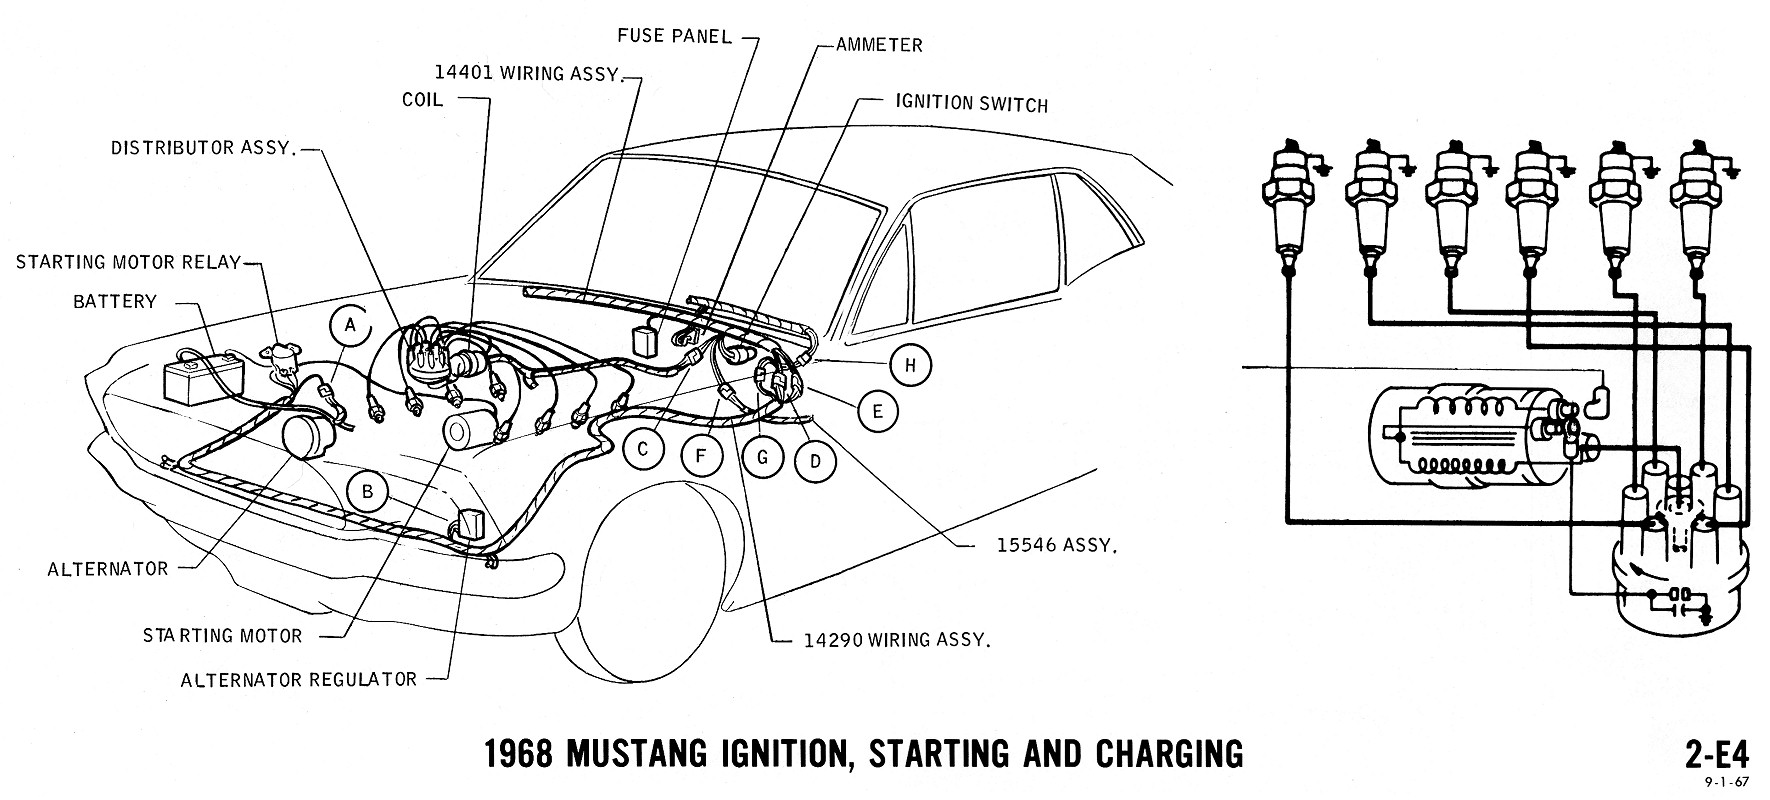 1968 mustang wiring diagrams and vacuum schematics average 1968 ford steering column wiring colors